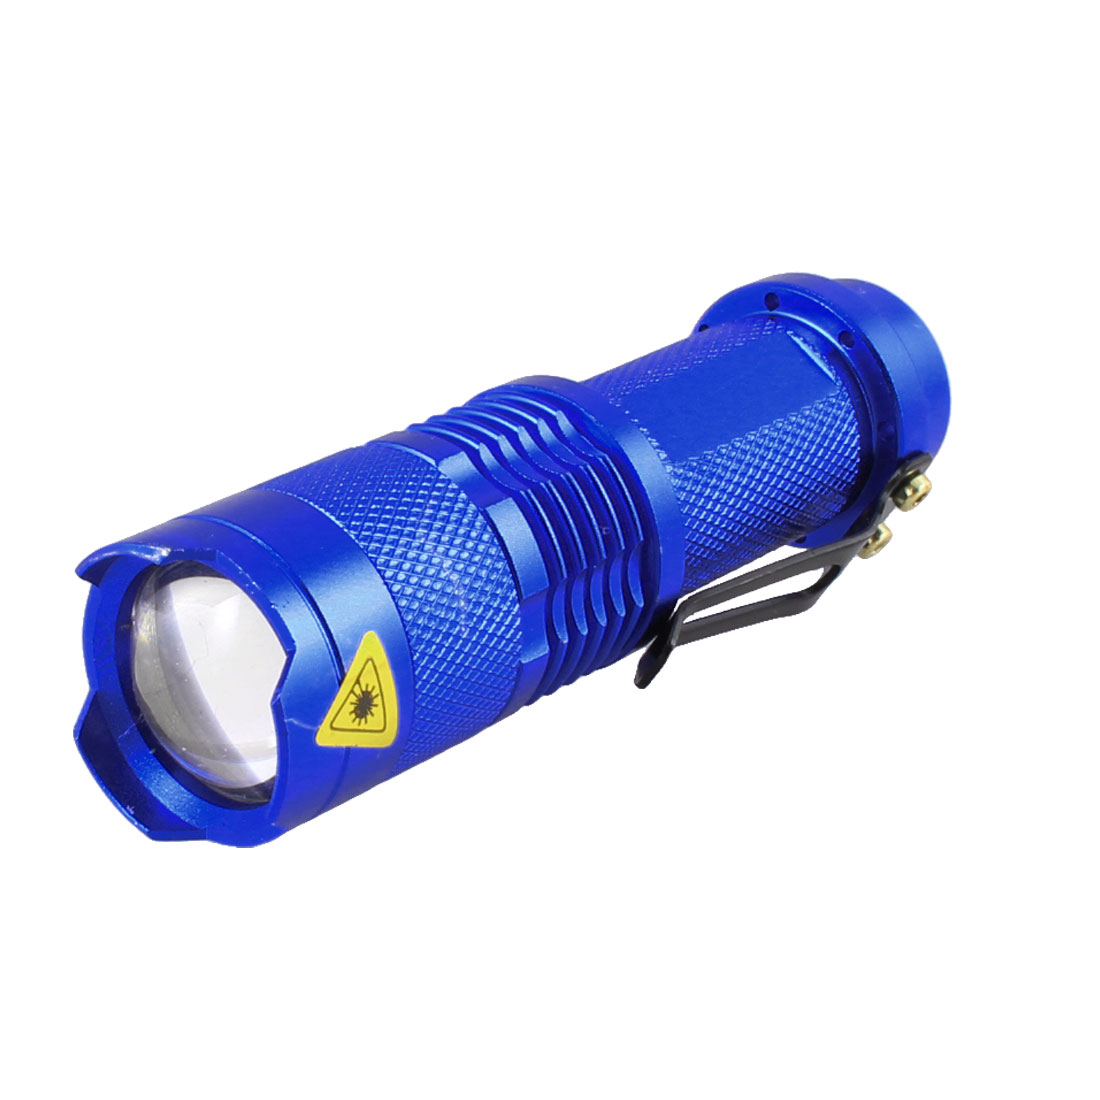 Blue Pen Shape Handhold 100 Lumens White Light LED Flashlight for Climbing